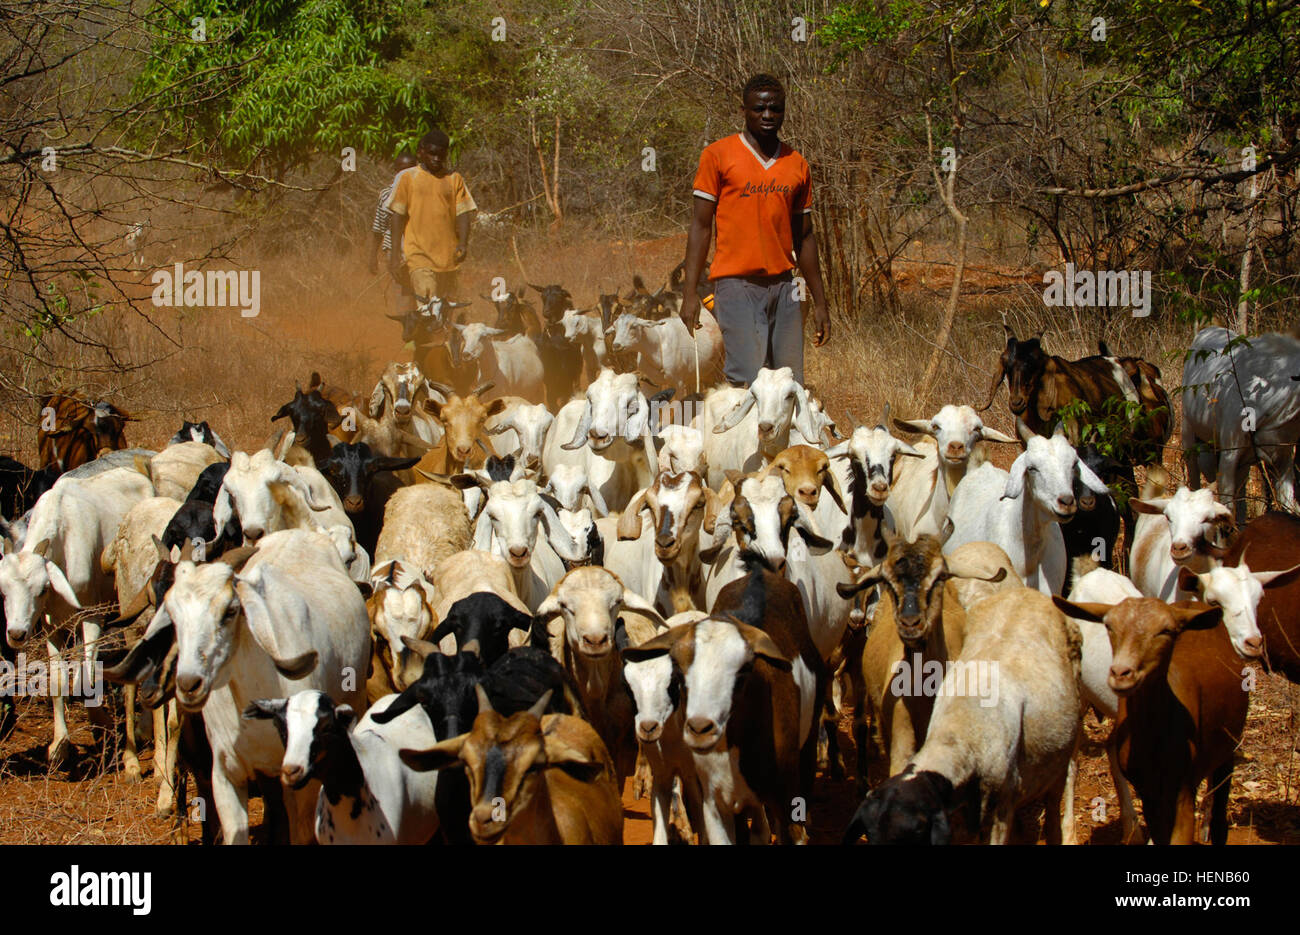 Local herdsman arrive at a 'cattle crush' with goats that will be treated by Kenyan veterinary staff for various Stock Photo